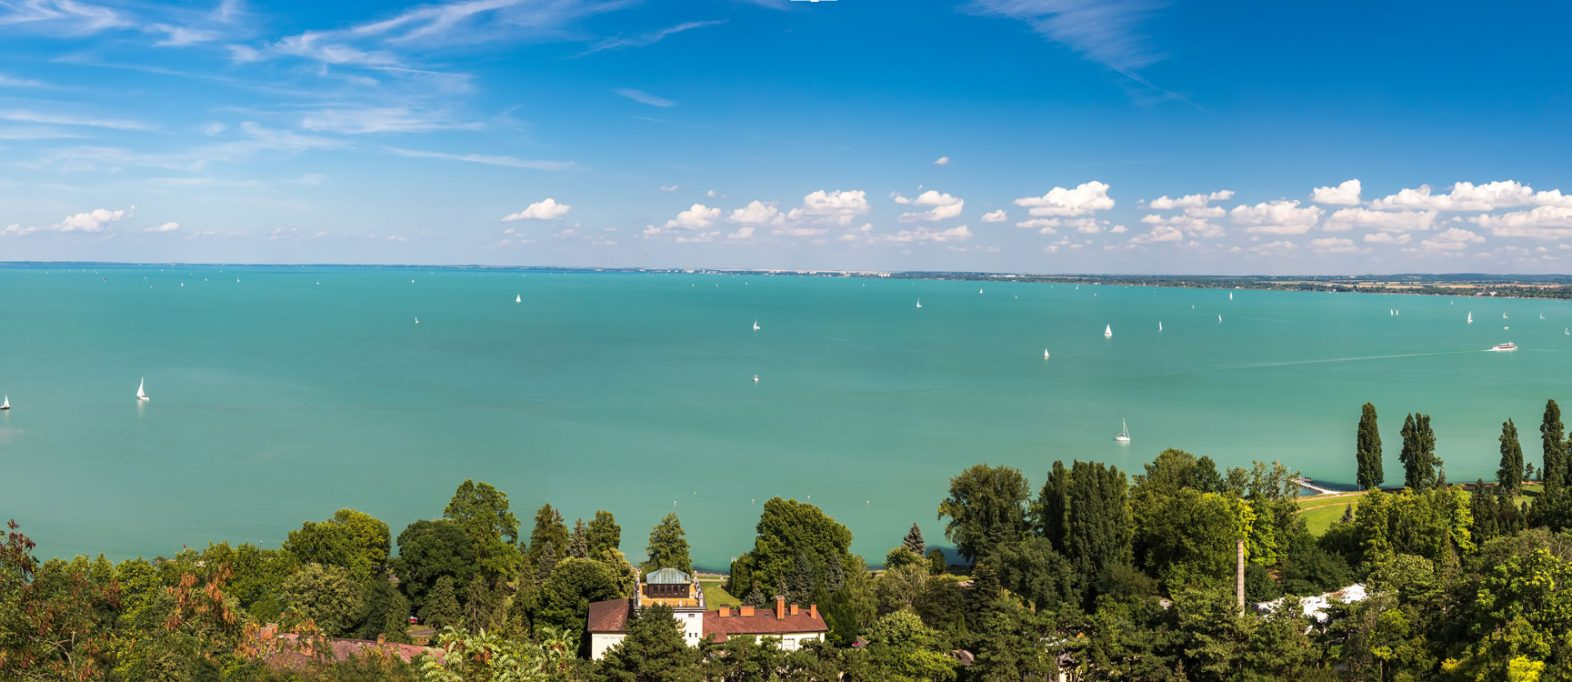 Plattensee Balaton (Adobe Stock ID: 120822434)